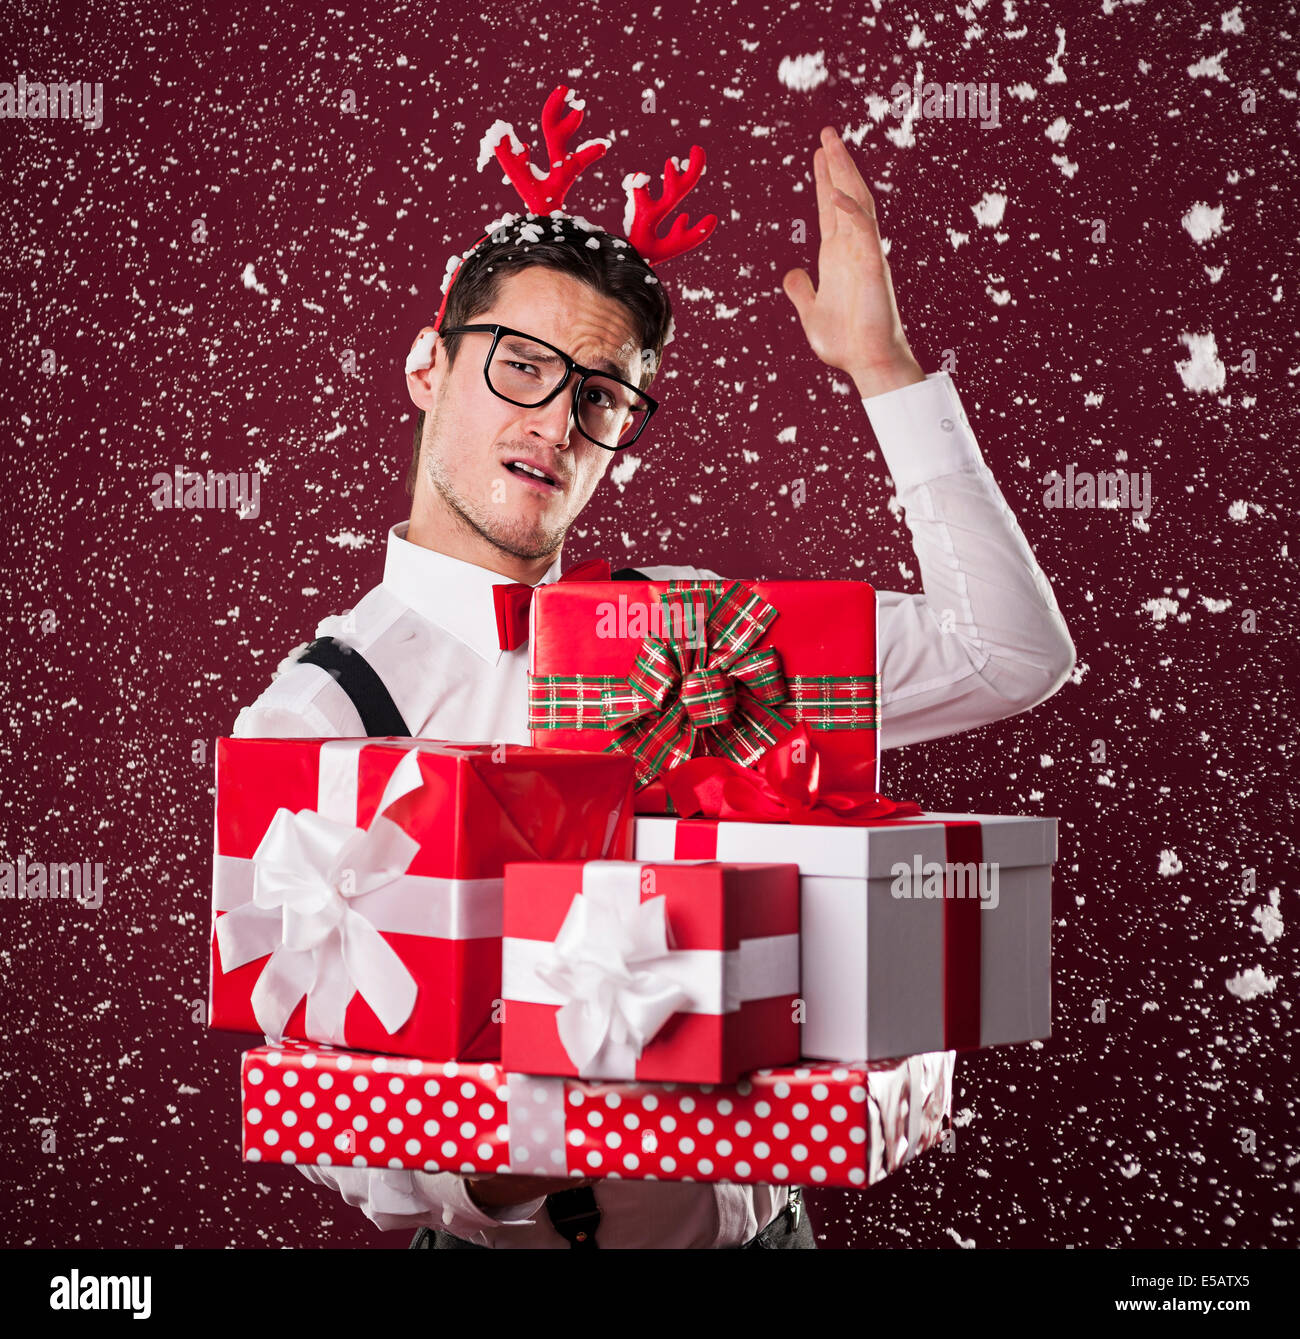 Grimacing man with stack of Christmas presents Debica, Poland Stock Photo